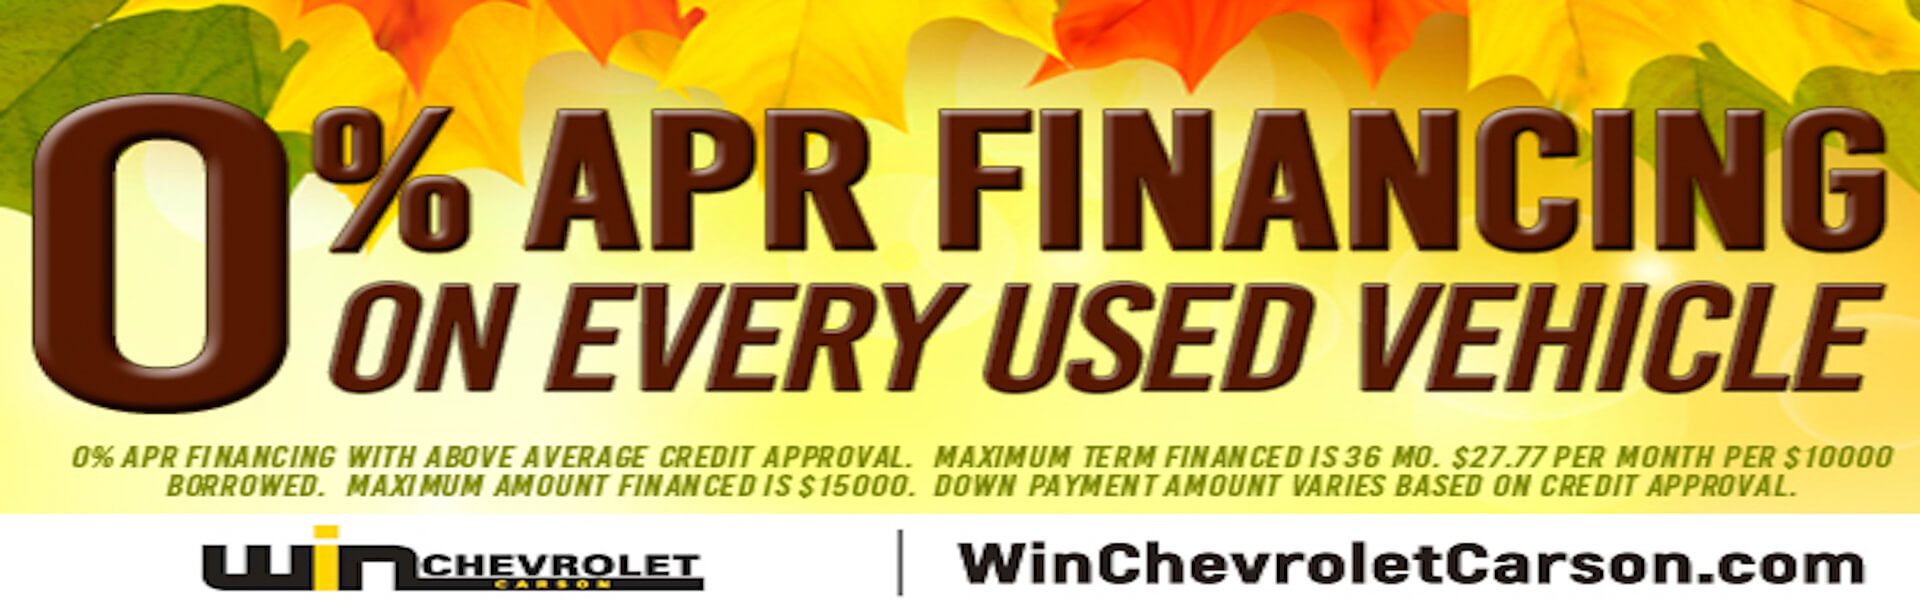 0% APR Financing - Chevy